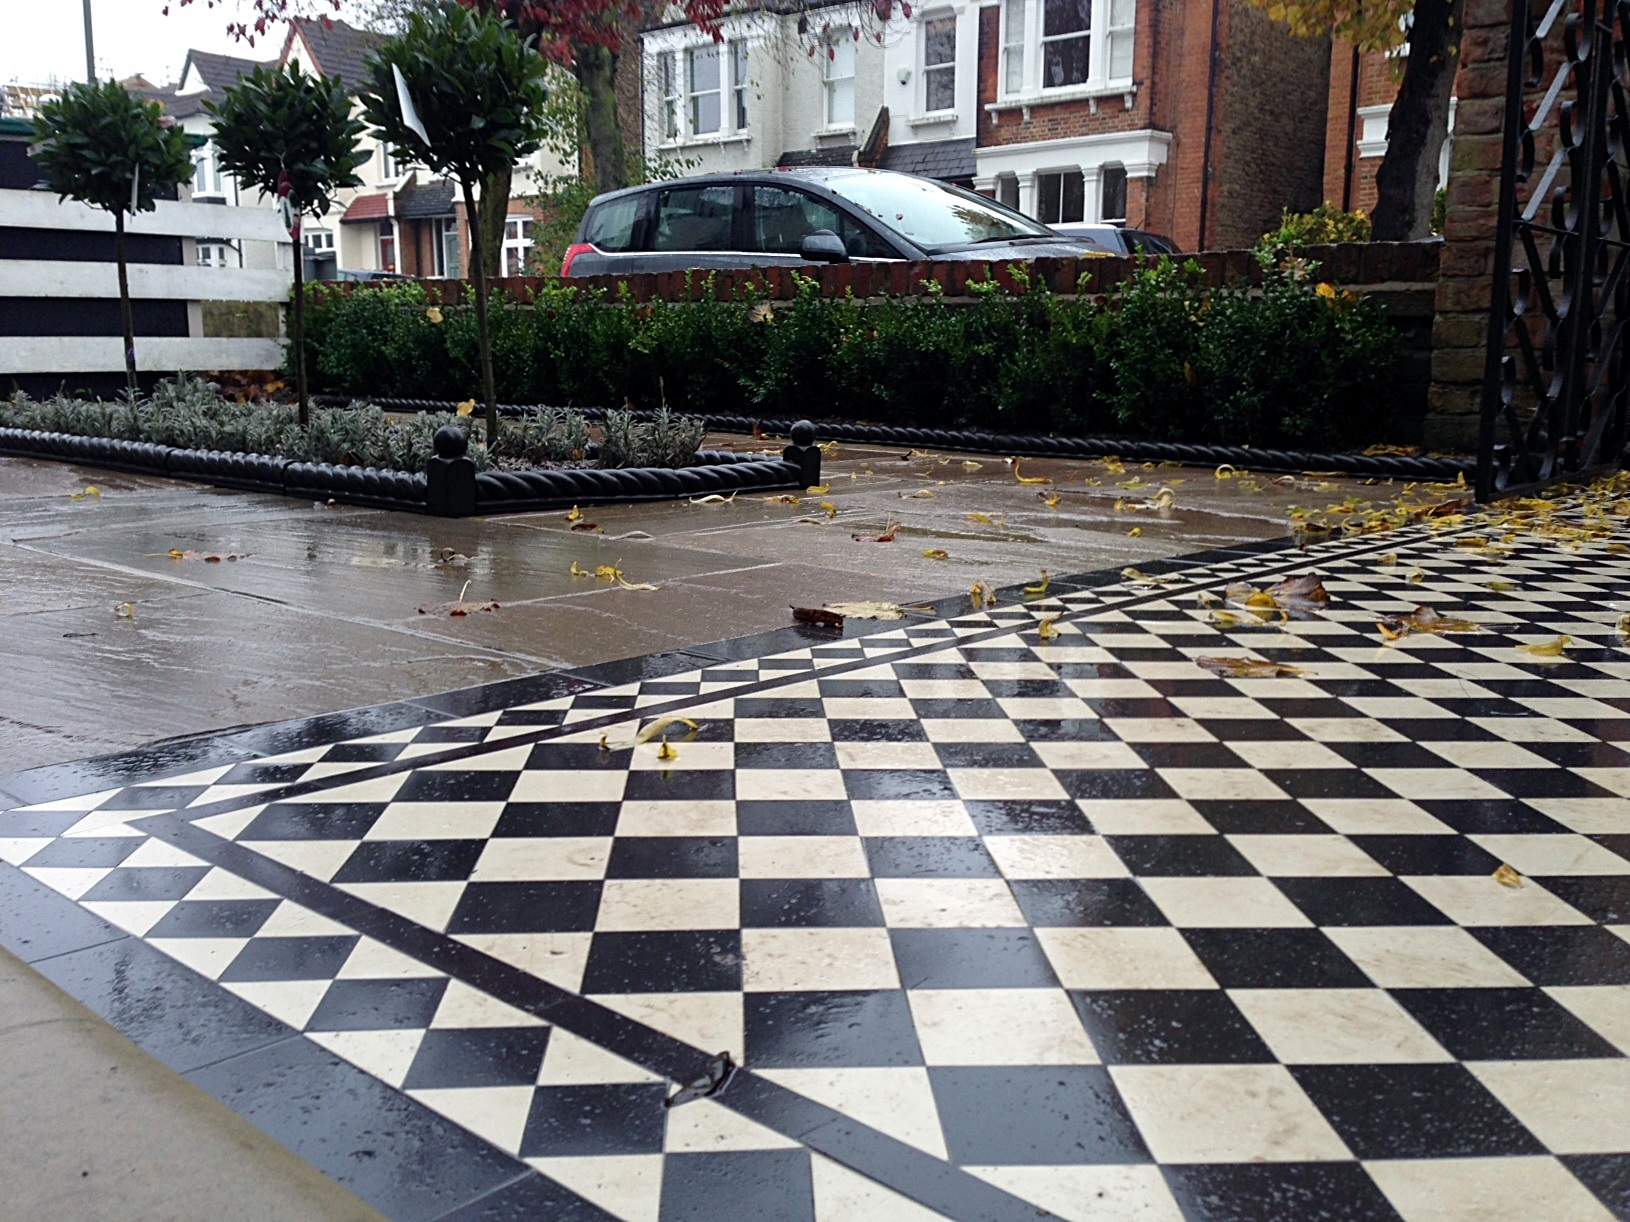 victroian black and white mosaic tile garden path paving formal planting buxus bay lavender edge tiles london (4)